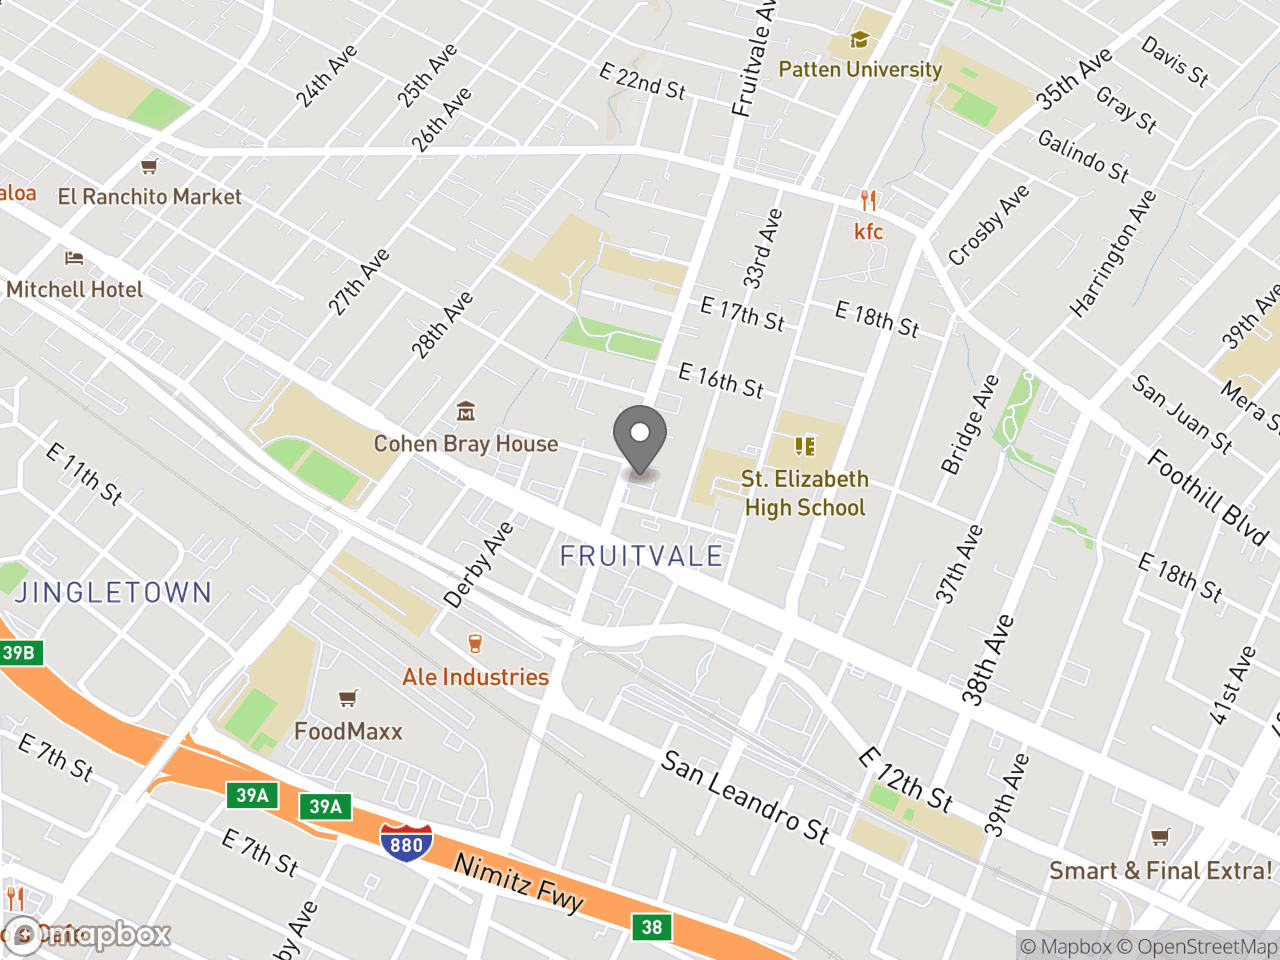 Map location for Taller de Derechos Del Inquilino (Tenants Rights Workshop in Spanish), located at 1470 Fruitvale Ave in Oakland, CA 94601